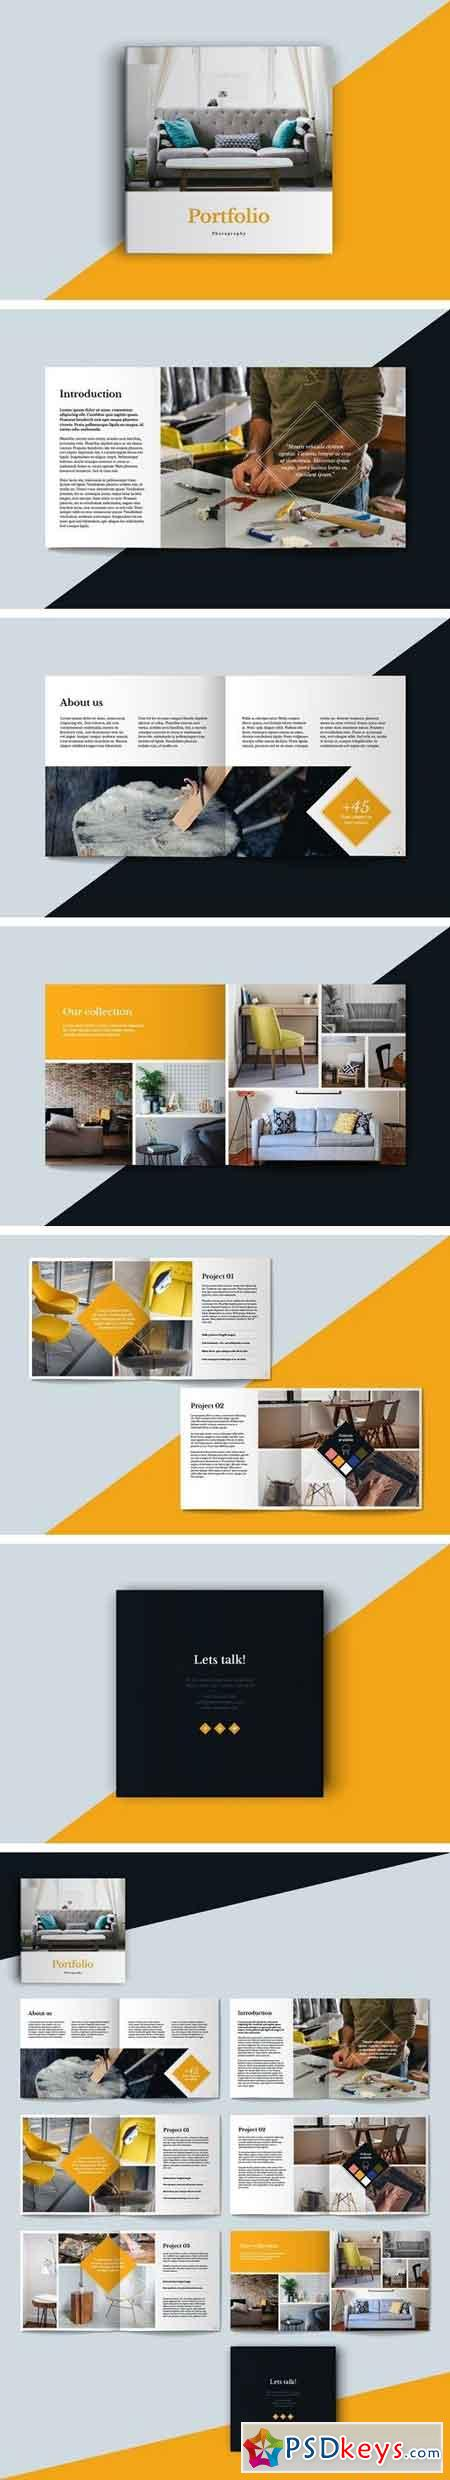 Square Portfolio Brochure Template Free Download - Portfolio brochure template